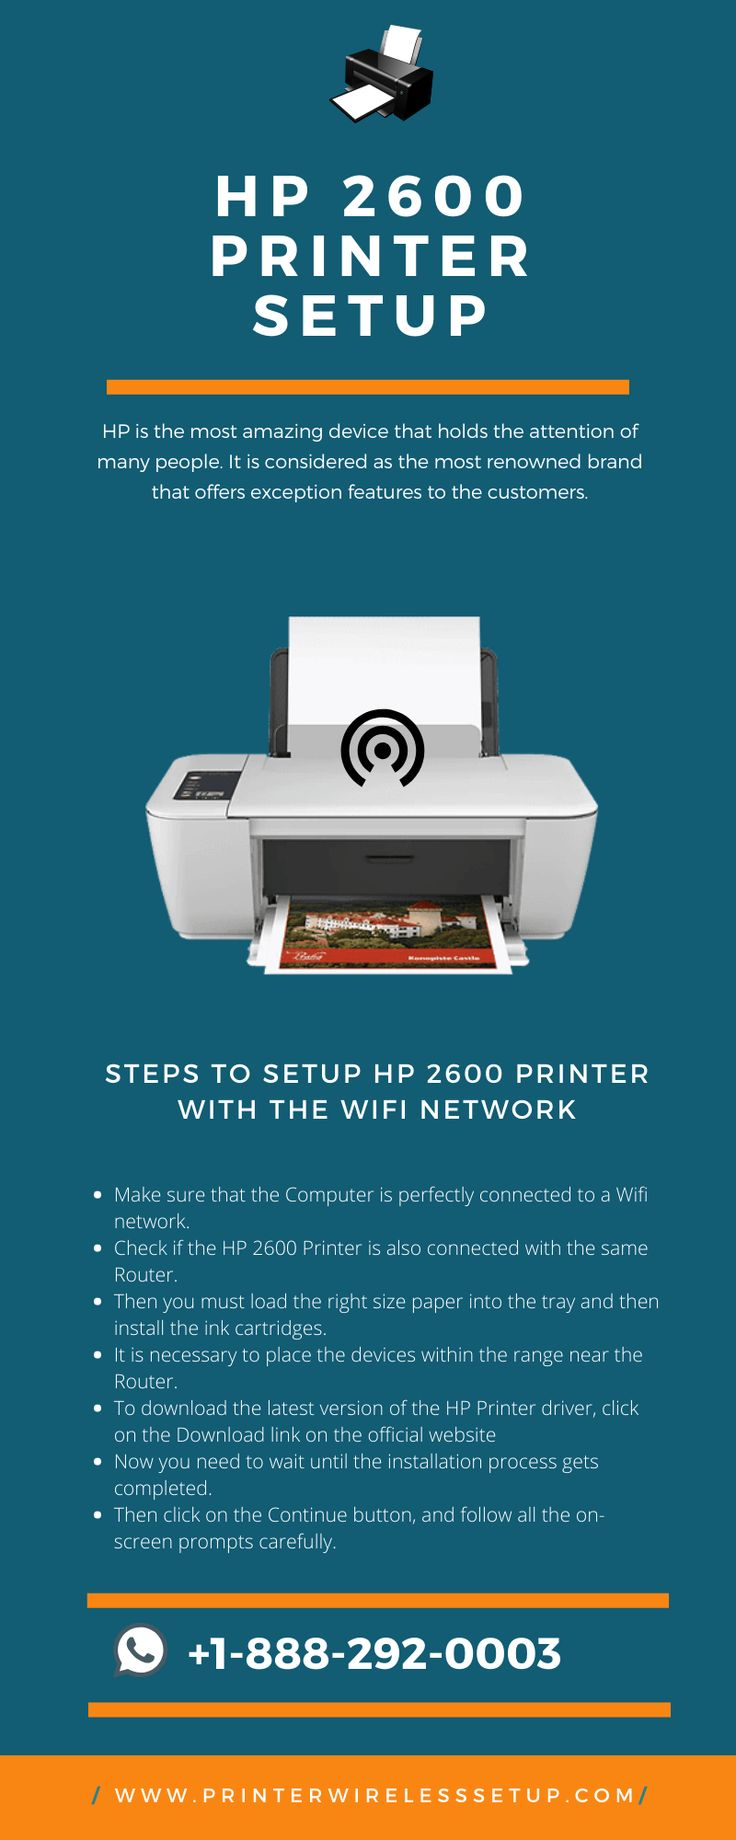 HP 2600 Printer Installation Download (With images